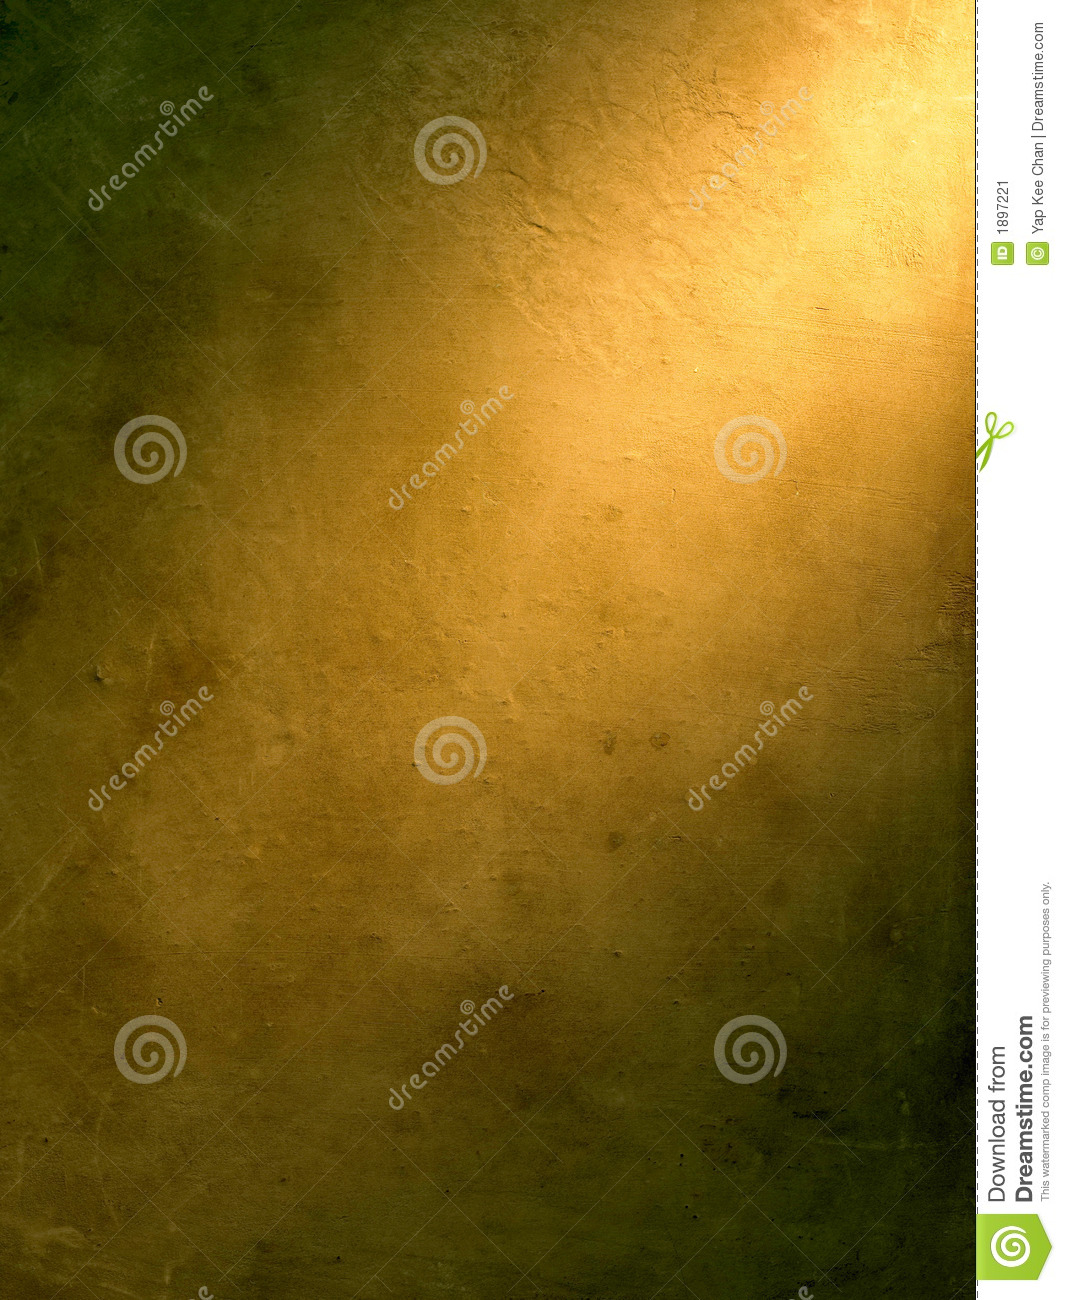 Highlight in gold background